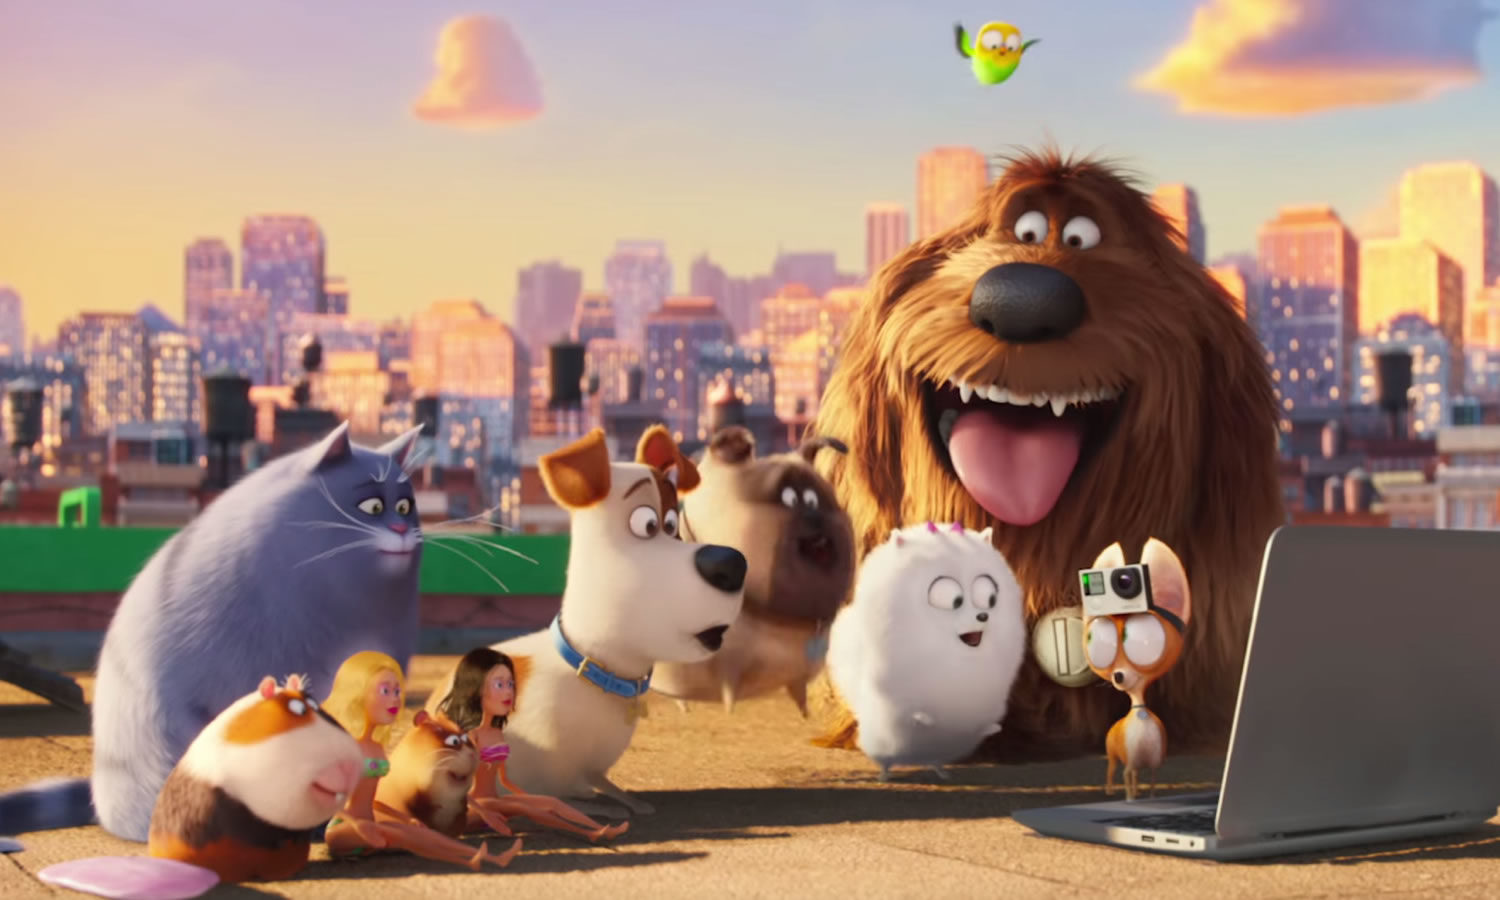 Crítica: Pets – A Vida Secreta dos Bichos (The Secret Life of Pets, EUA, 2016)